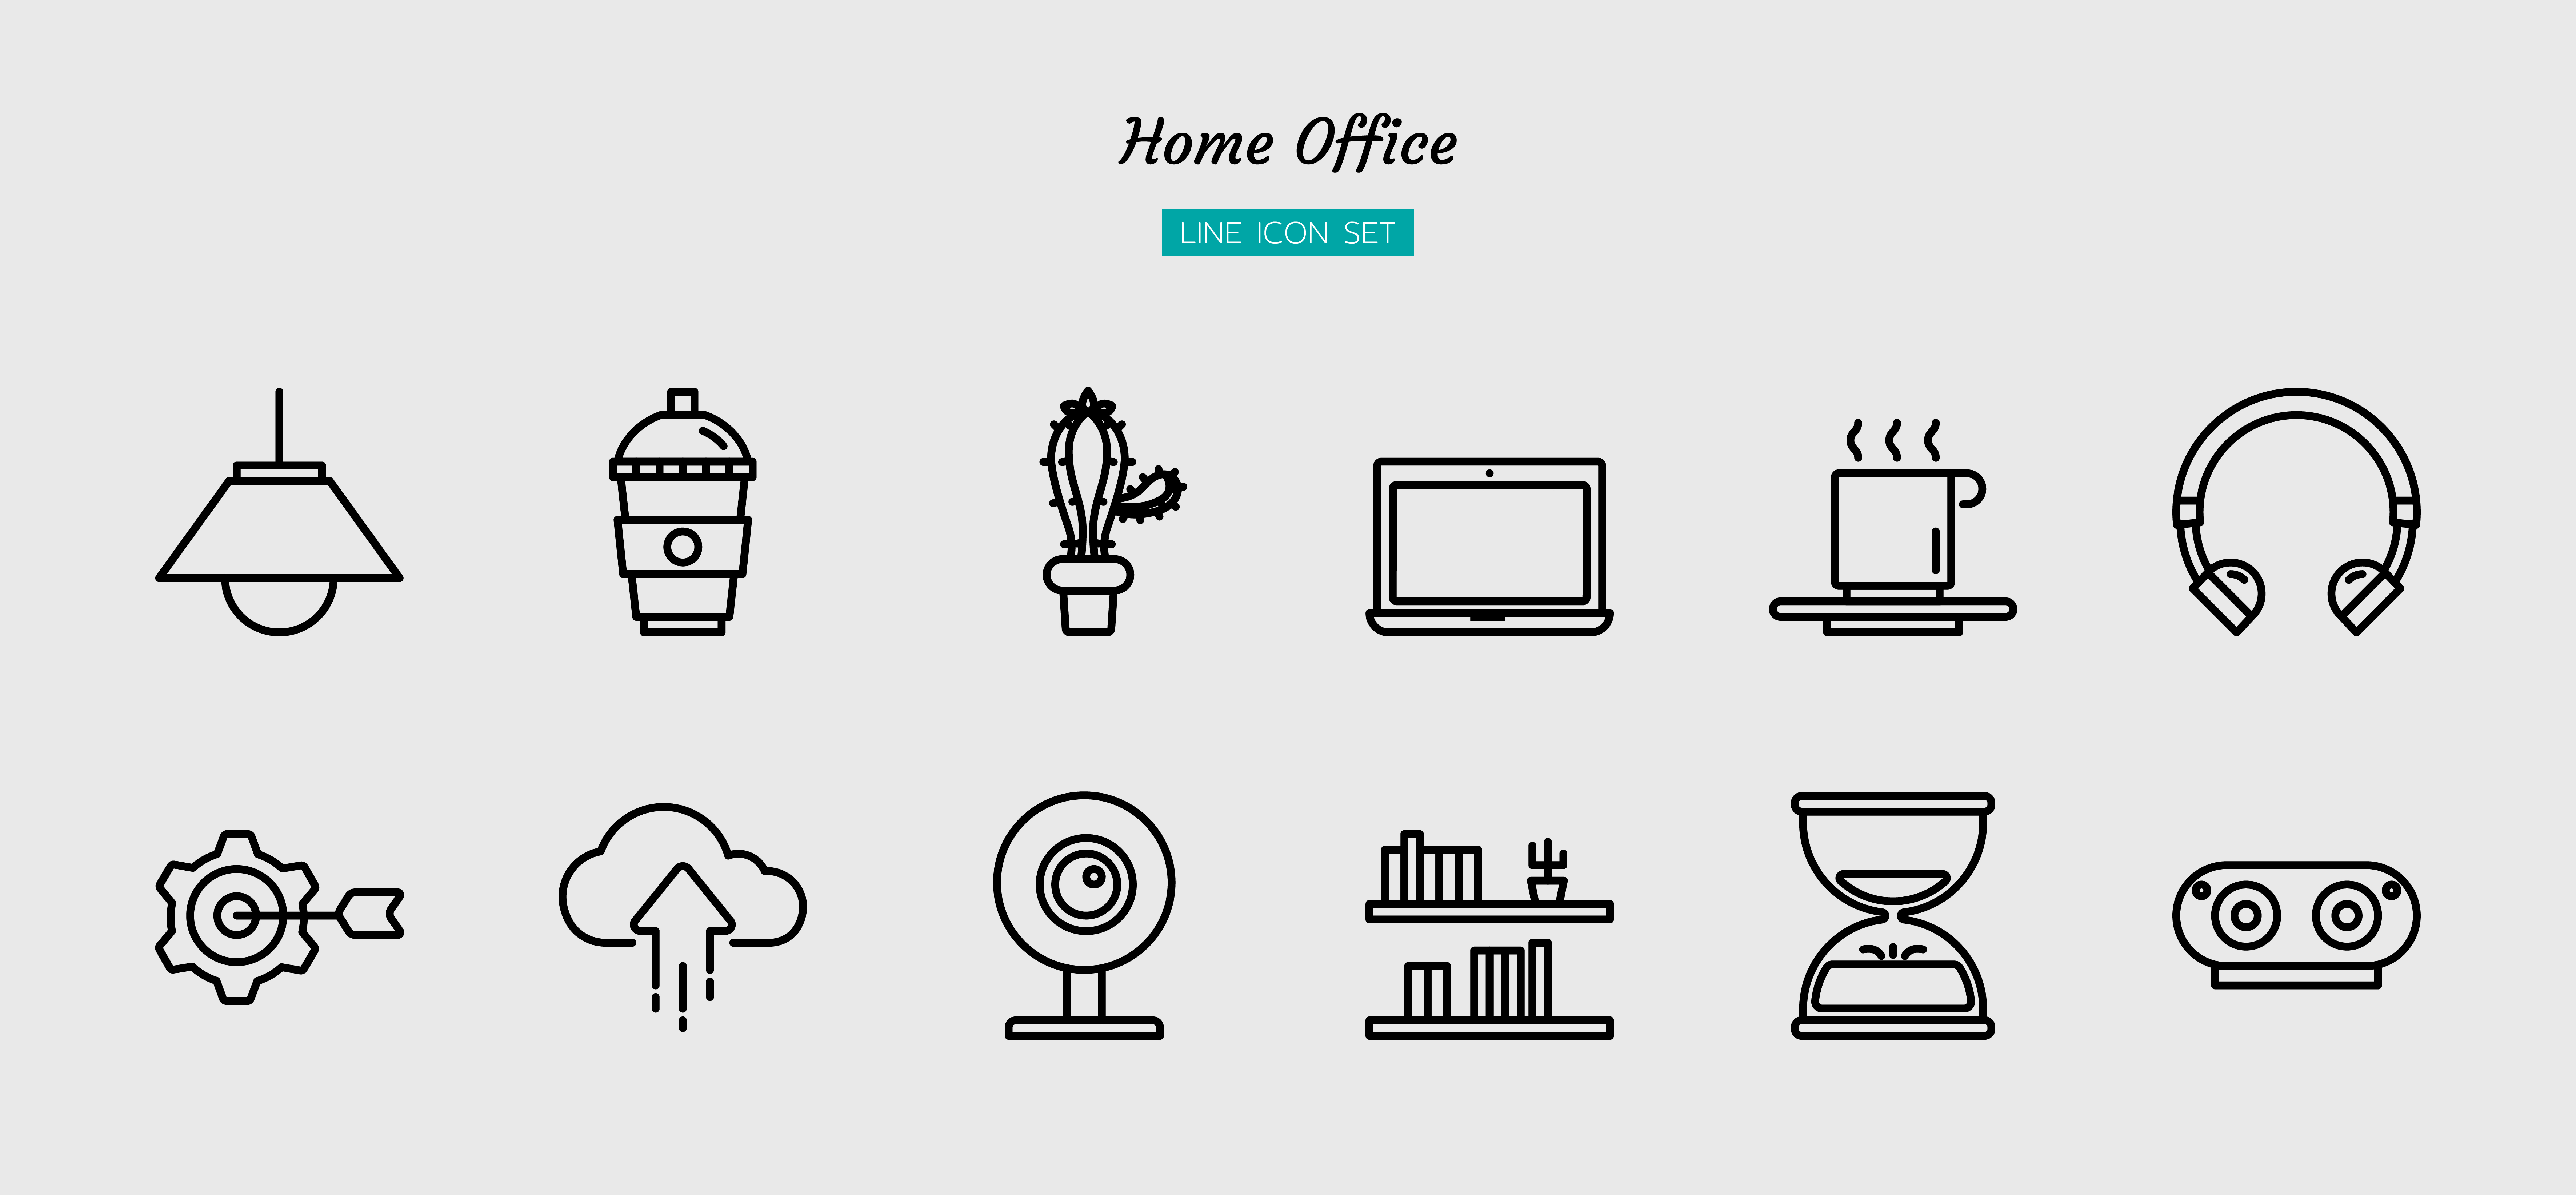 Home office black line icon symbol set vector